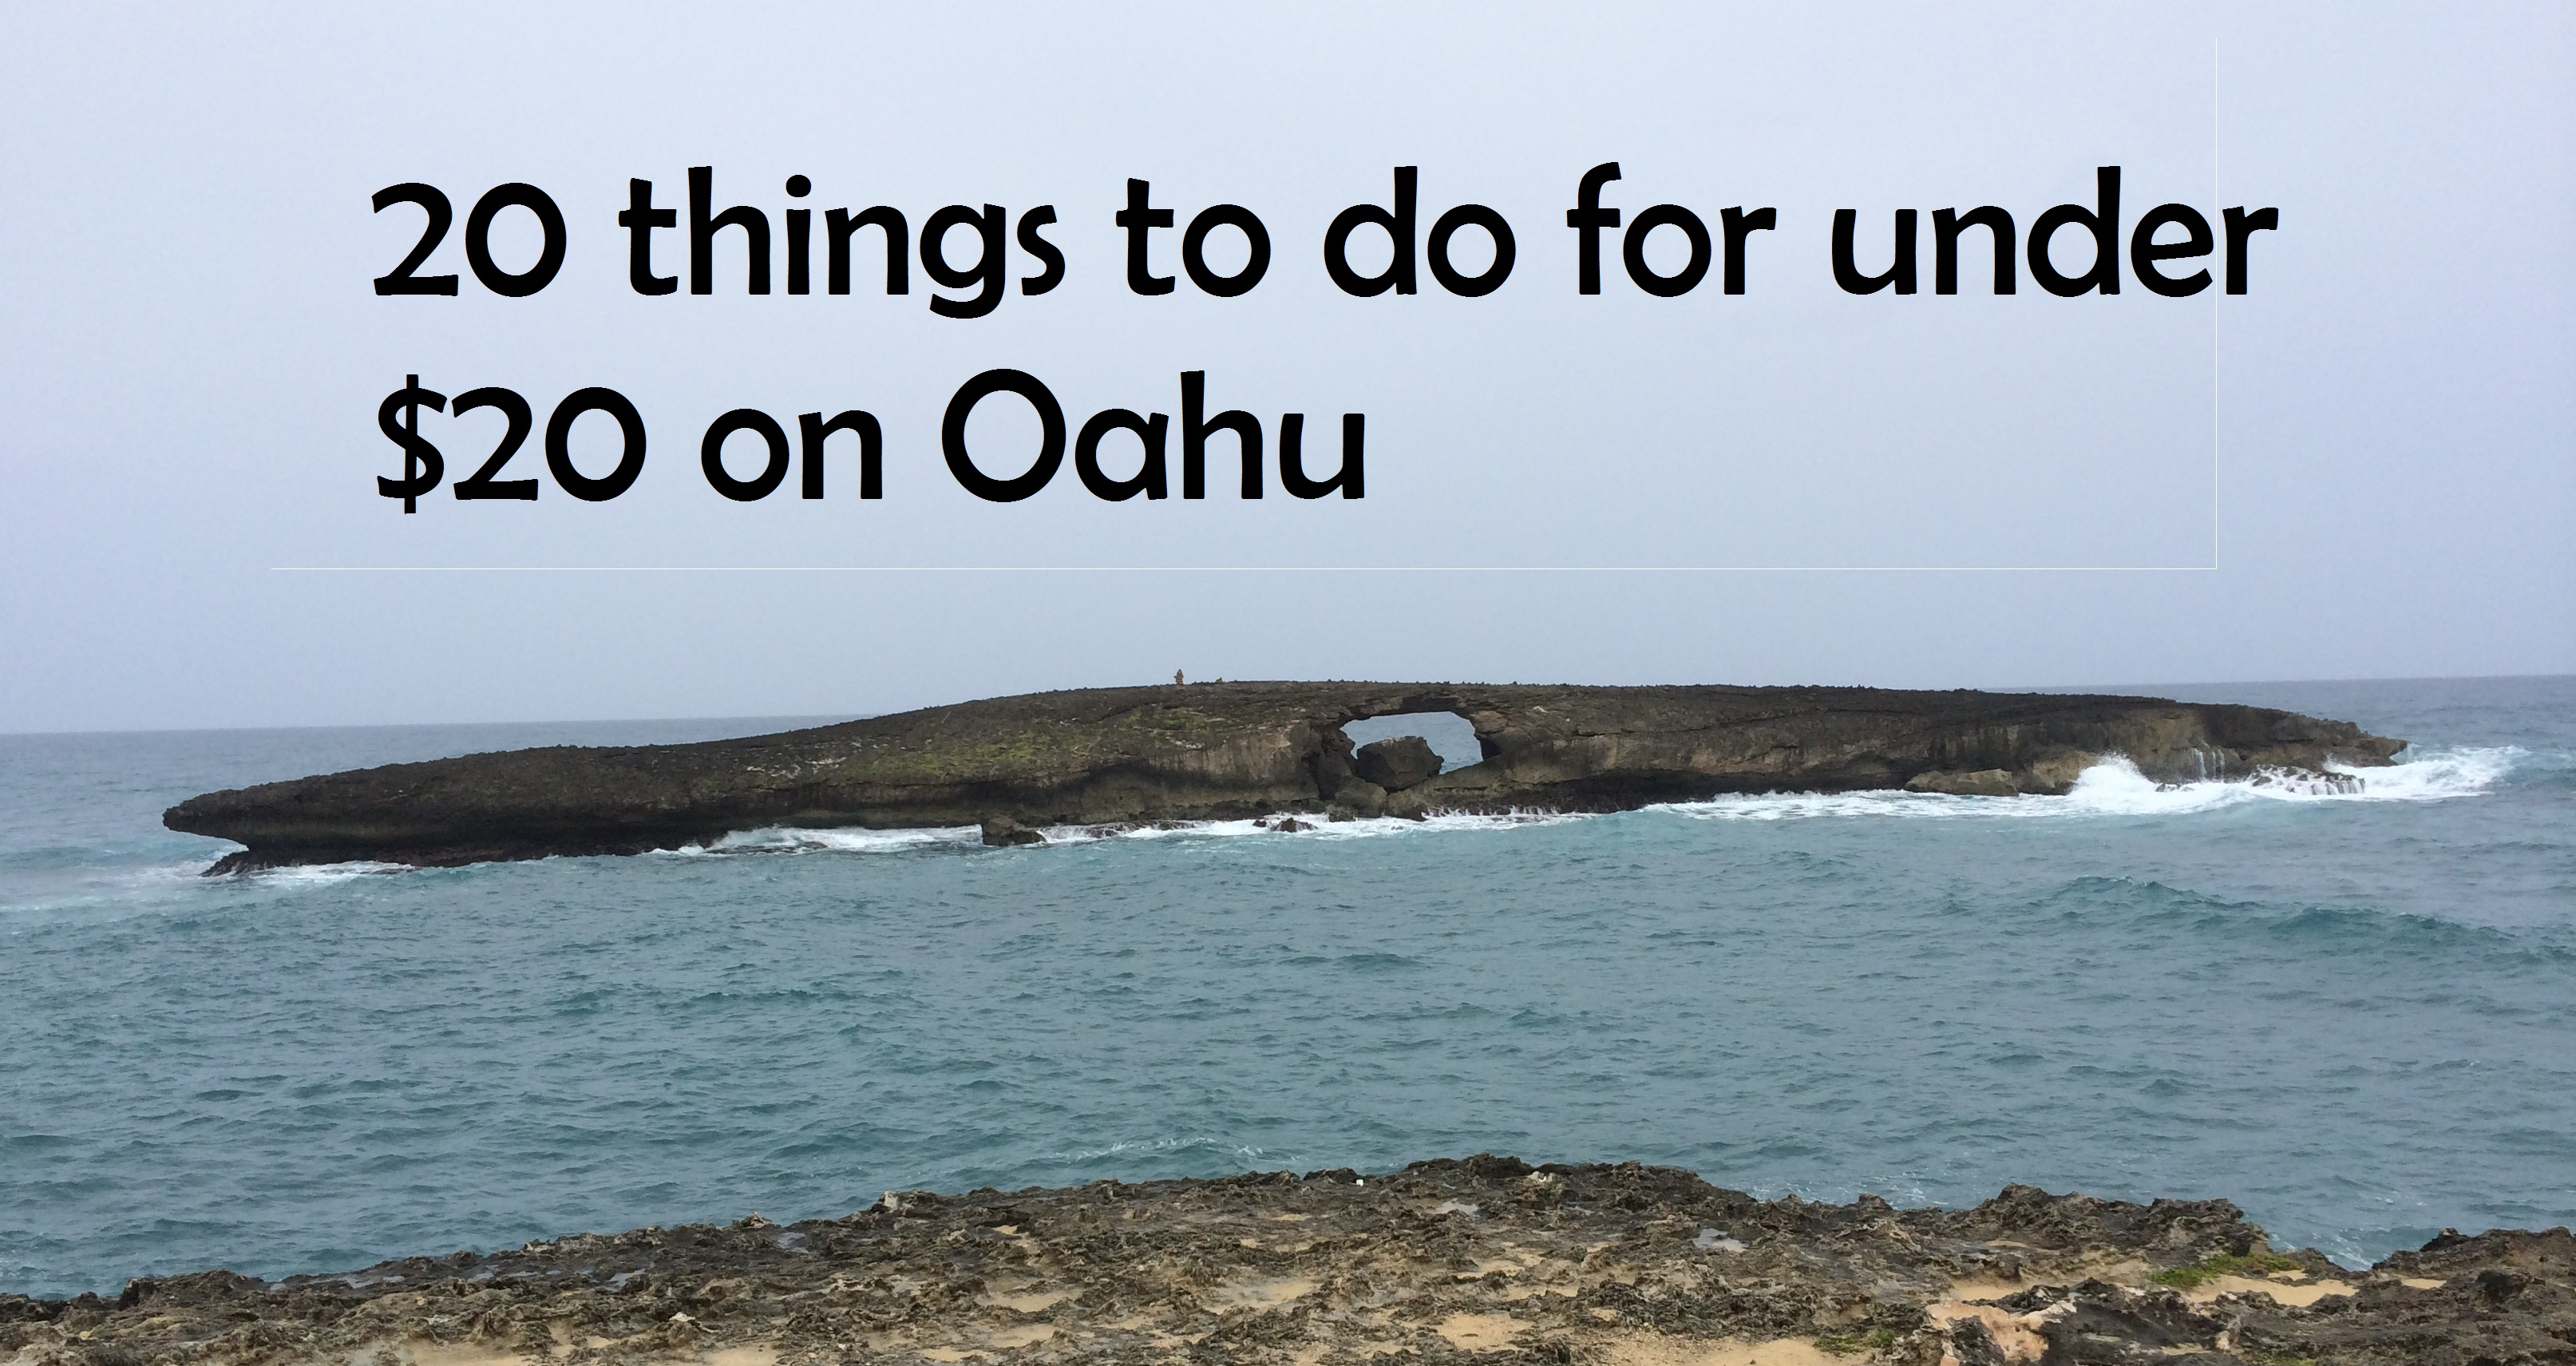 Oahu on a Budget: 20 things to do for under $20